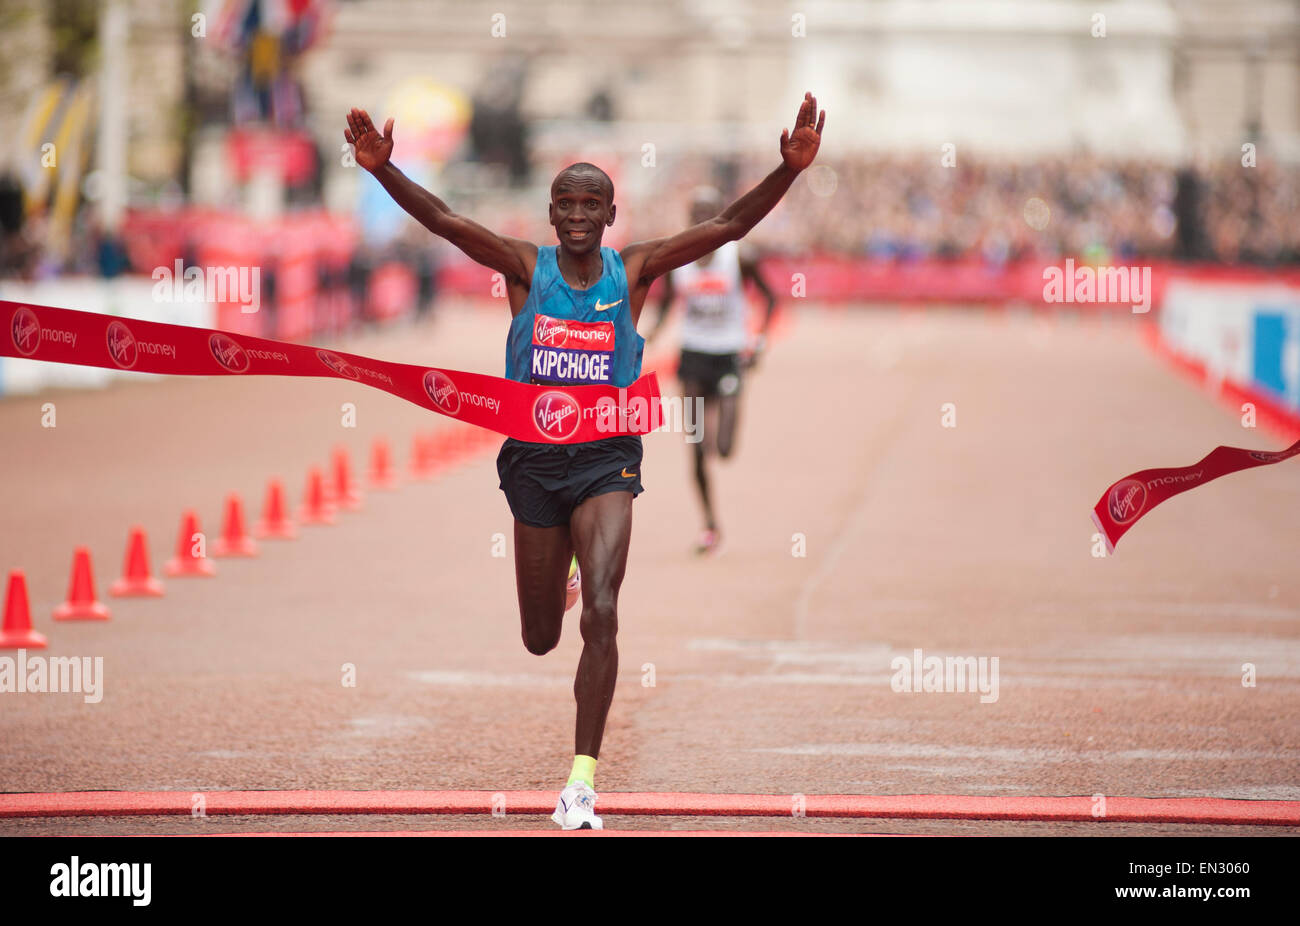 Eliud Kipchoge du Kenya remporte le marathon de Londres Virgin Money en 2015 02:04:42 par Wilson Kipsang de Kenya Photo Stock